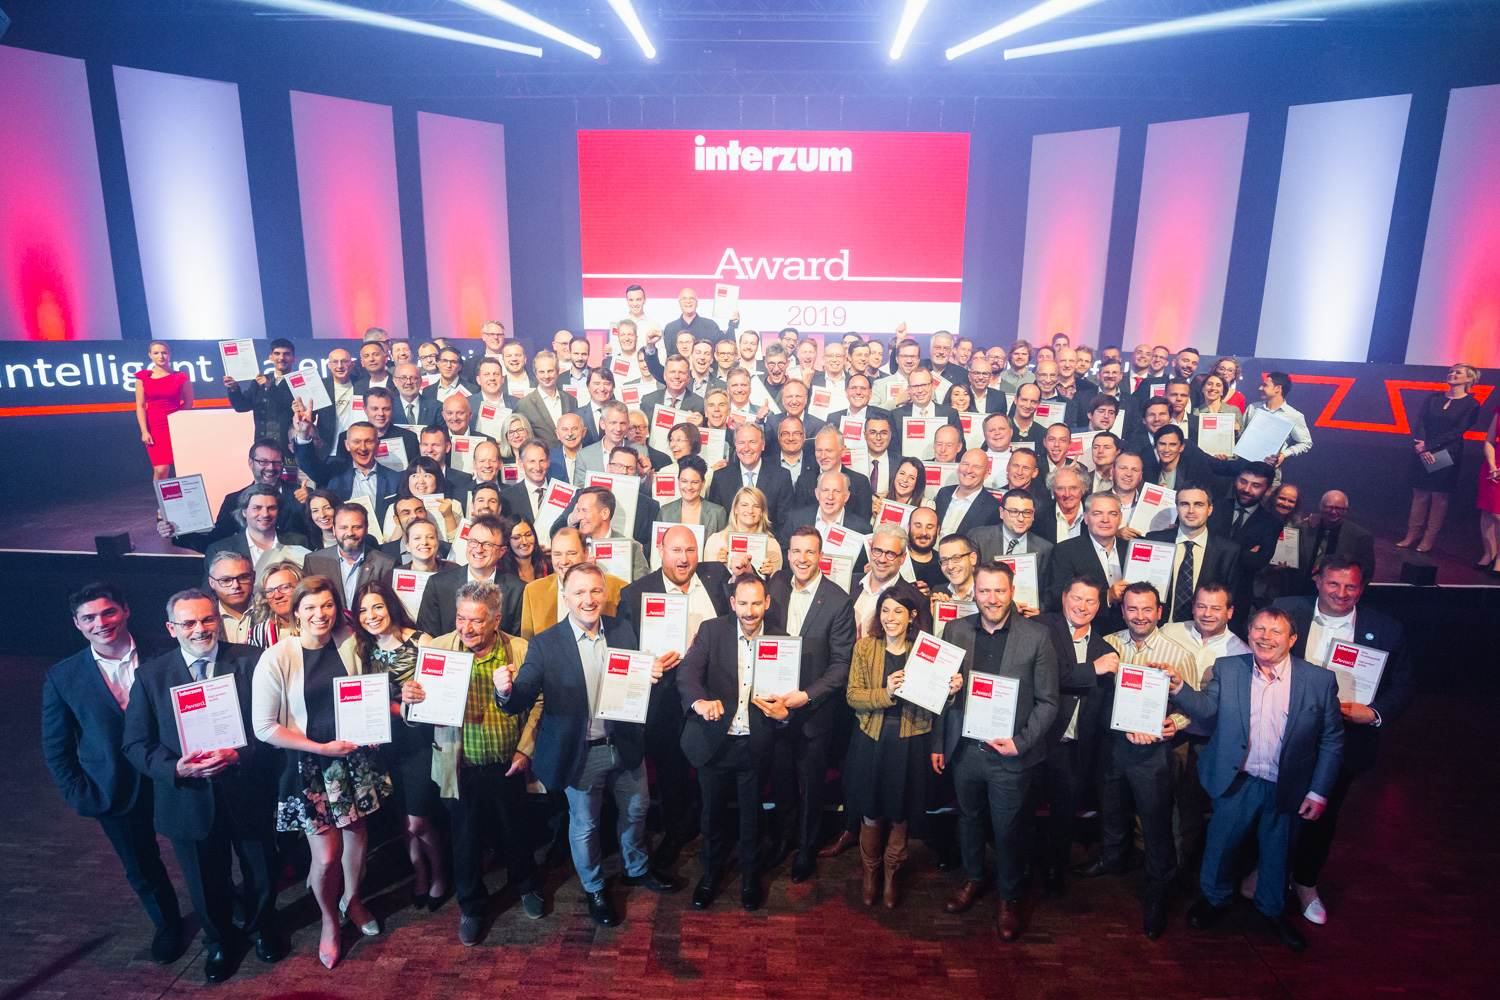 interzum award 2019 verliehen